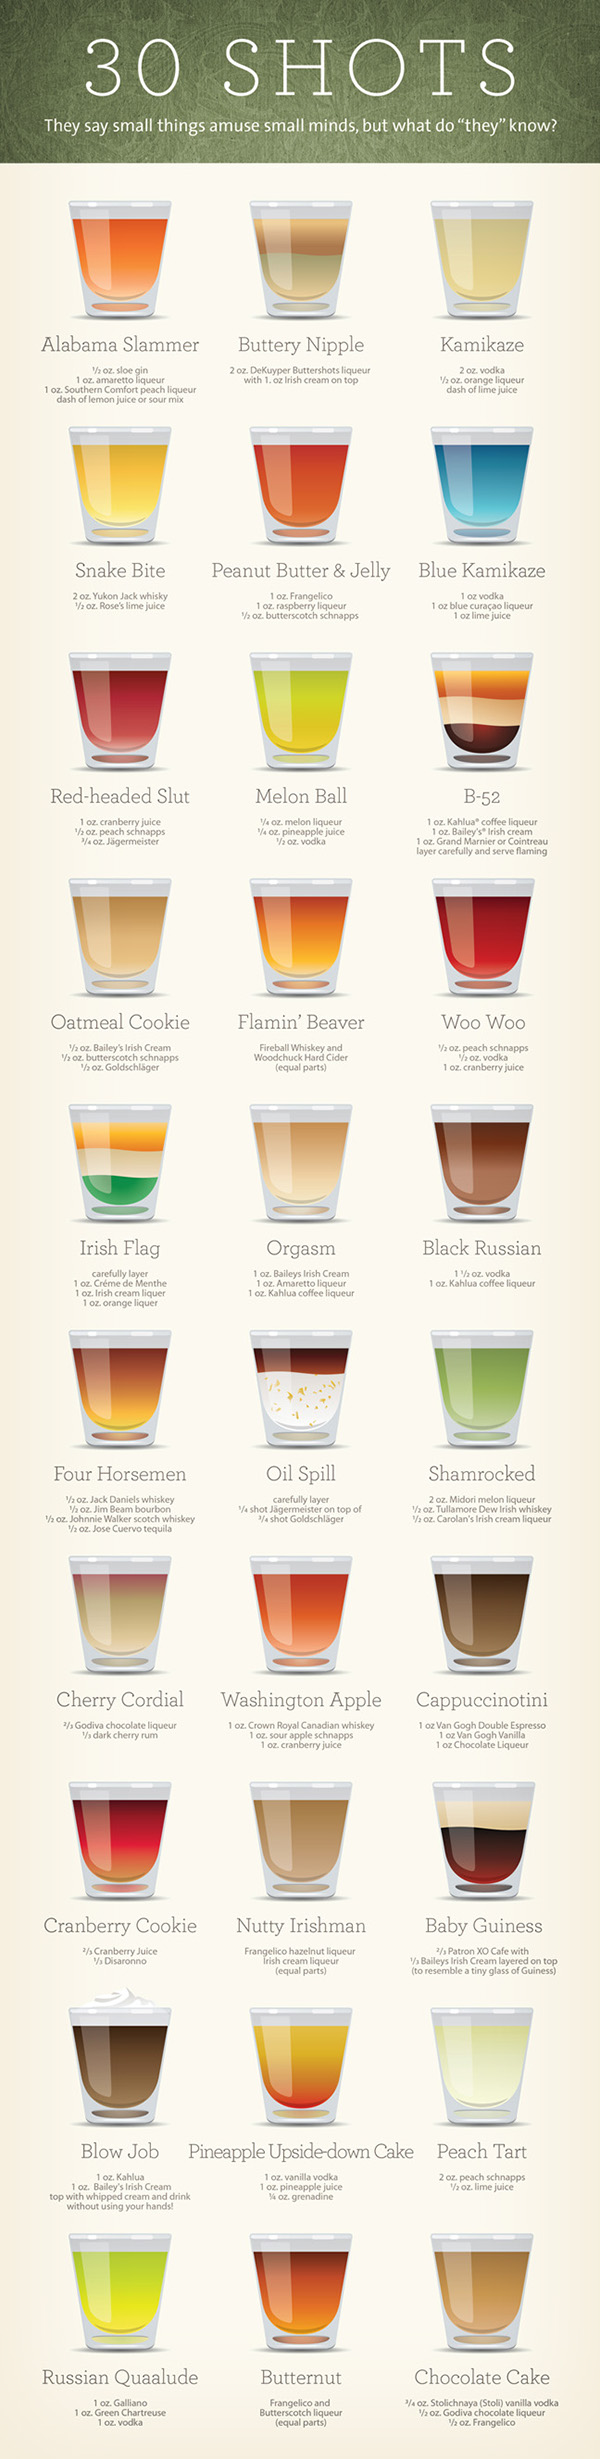 shots  poster  infographic